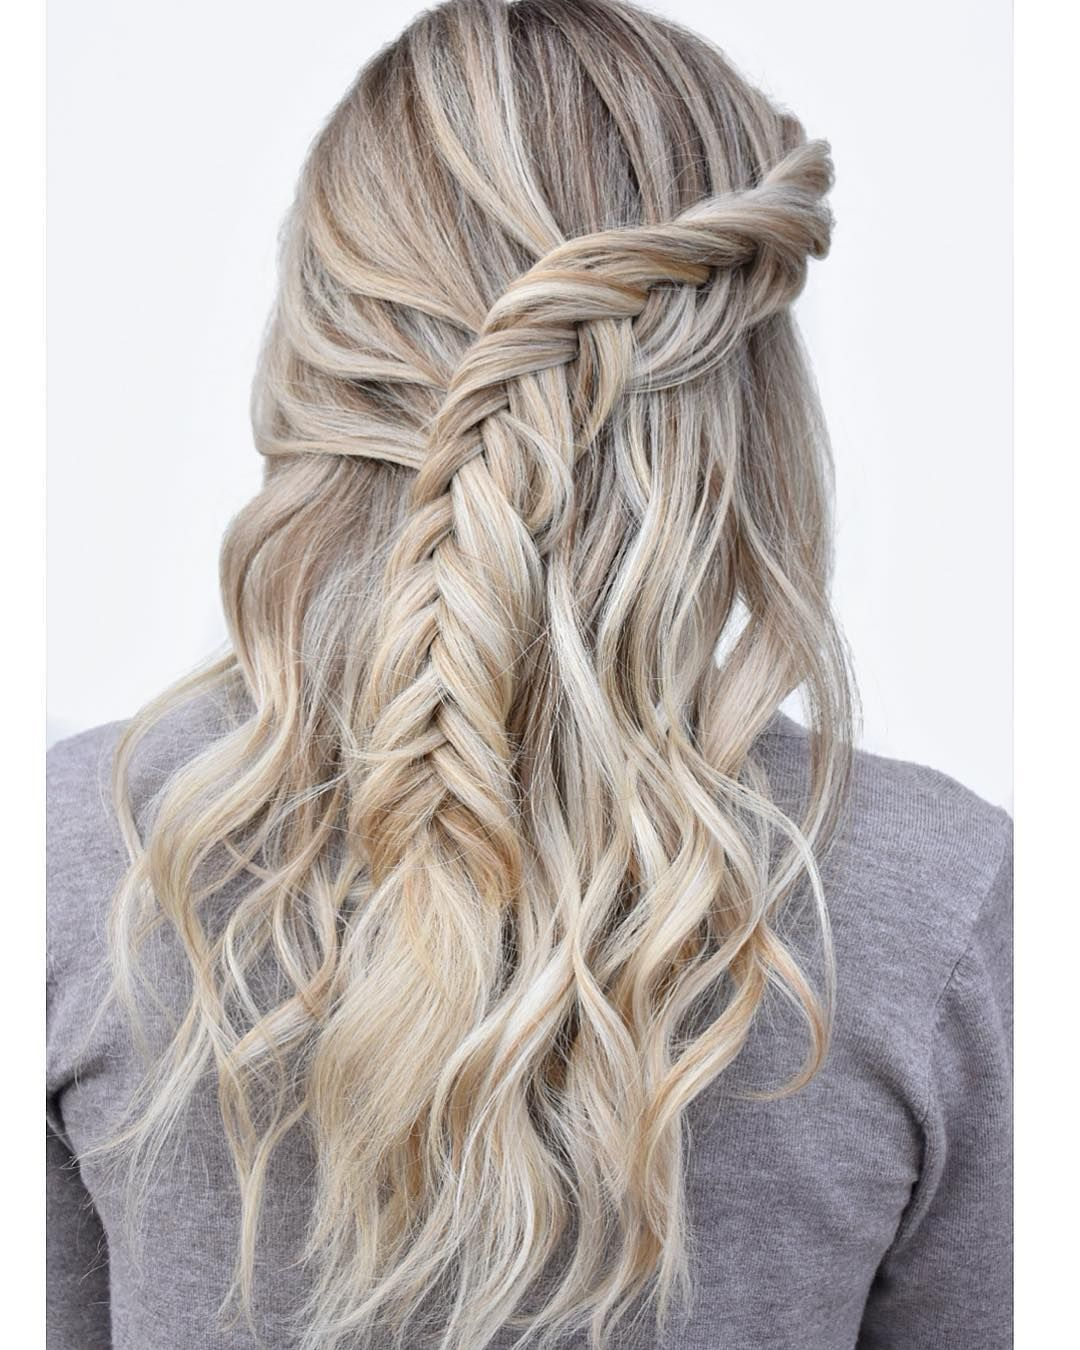 For More Braid Video Tutorials Just Visit Our Website